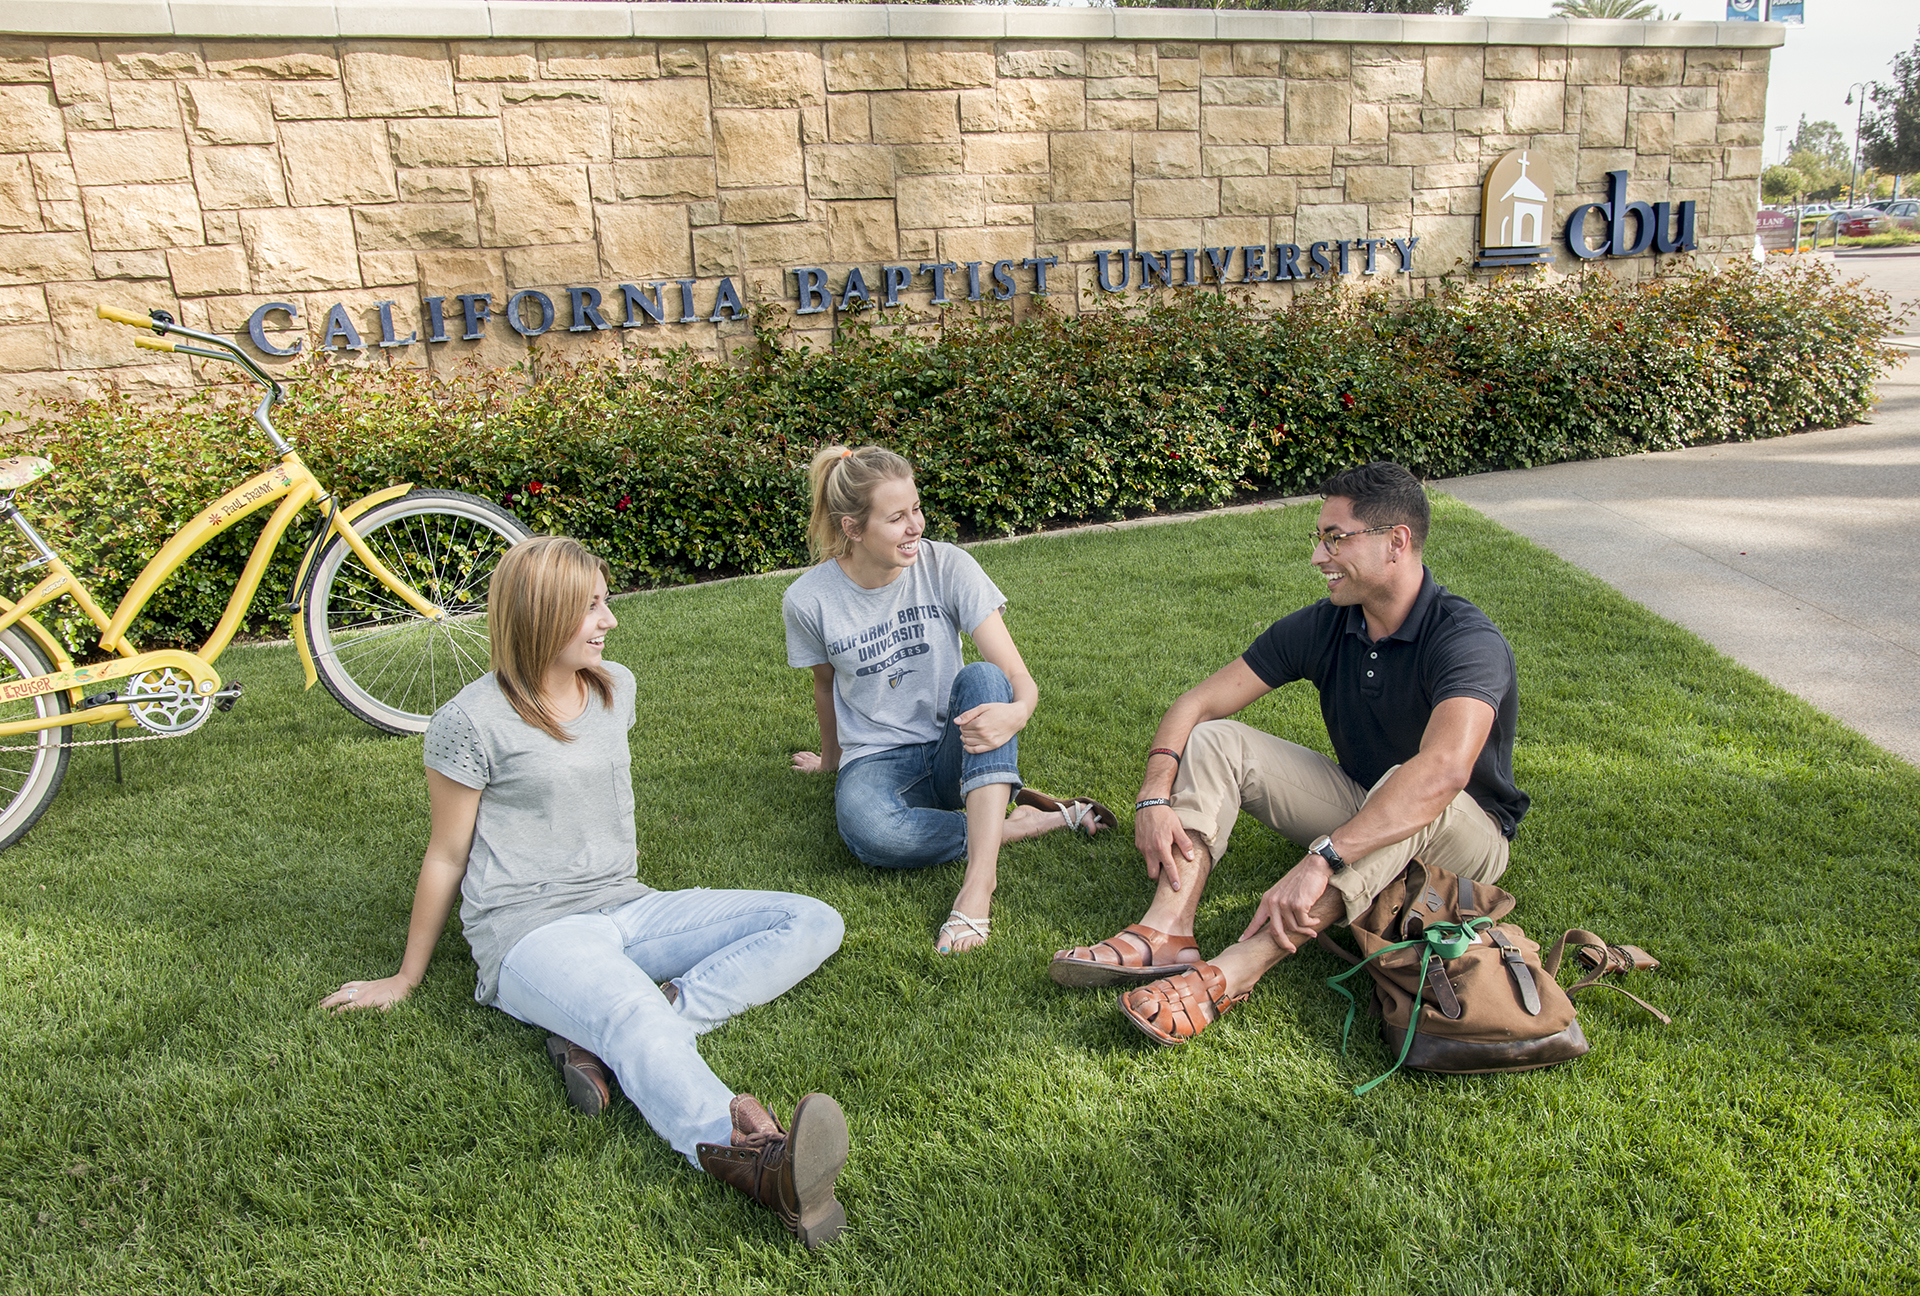 Fall 2016 enrollment at California Baptist University set another record with 9,157 students—a 7.2 percent increase above the fall enrollment figure the previous year, President Ronald L. Ellis announced today.